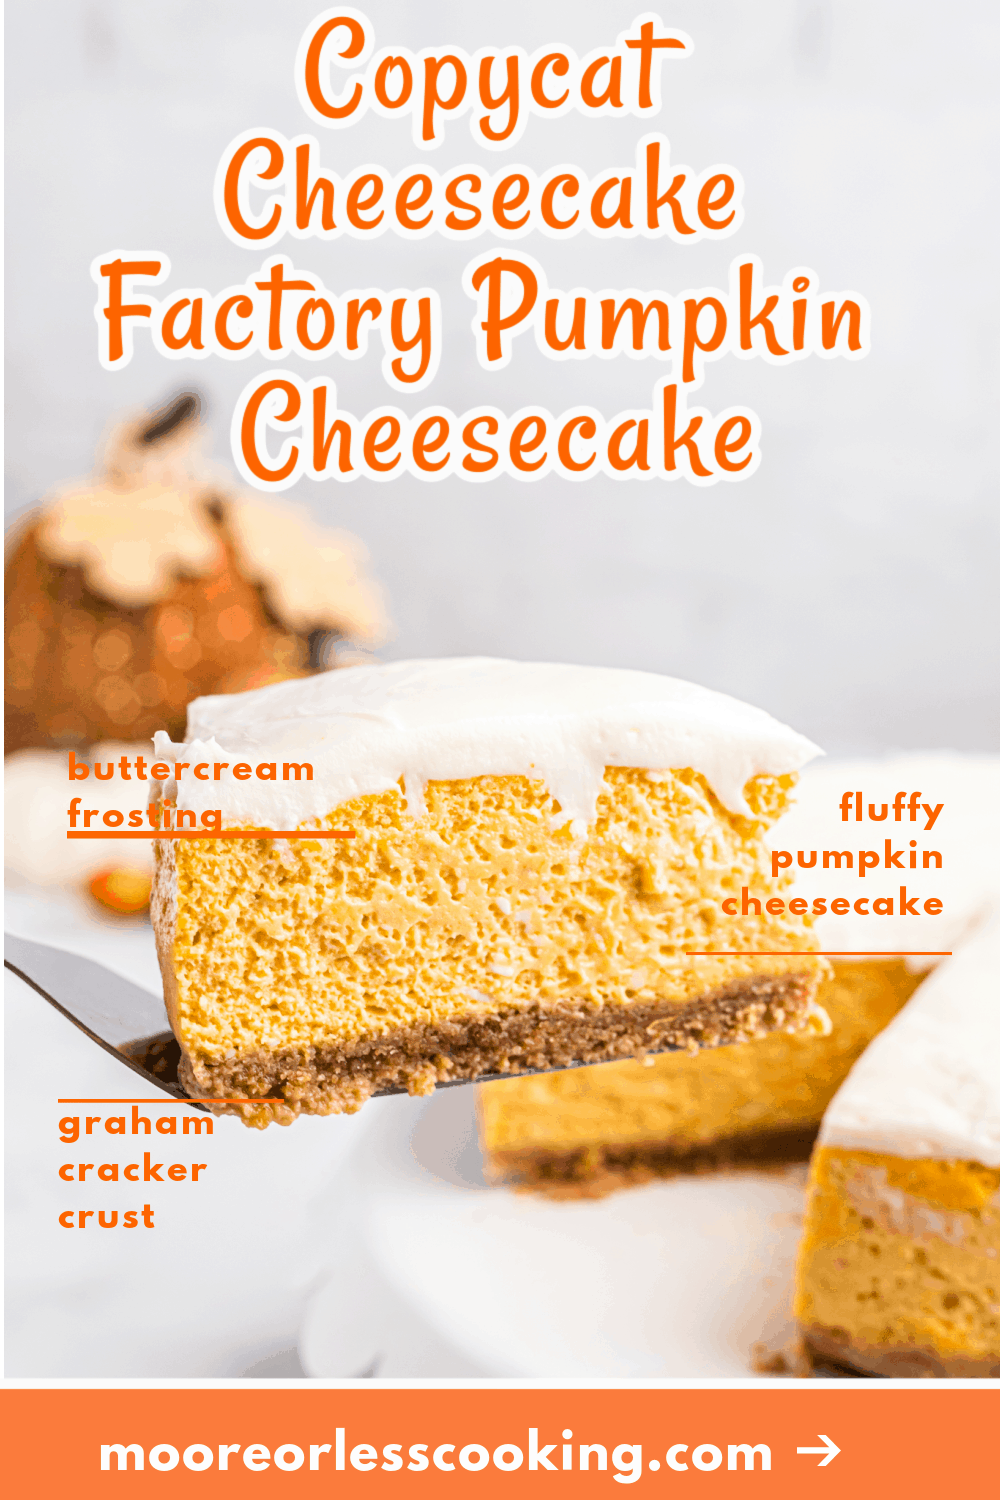 Save money while enjoying the taste of Cheesecake Factory's Pumpkin Cheesecake. This recipe is the perfect dupe for the traditional recipe, but you can make it at home instead of going to the restaurant to get it. via @Mooreorlesscook